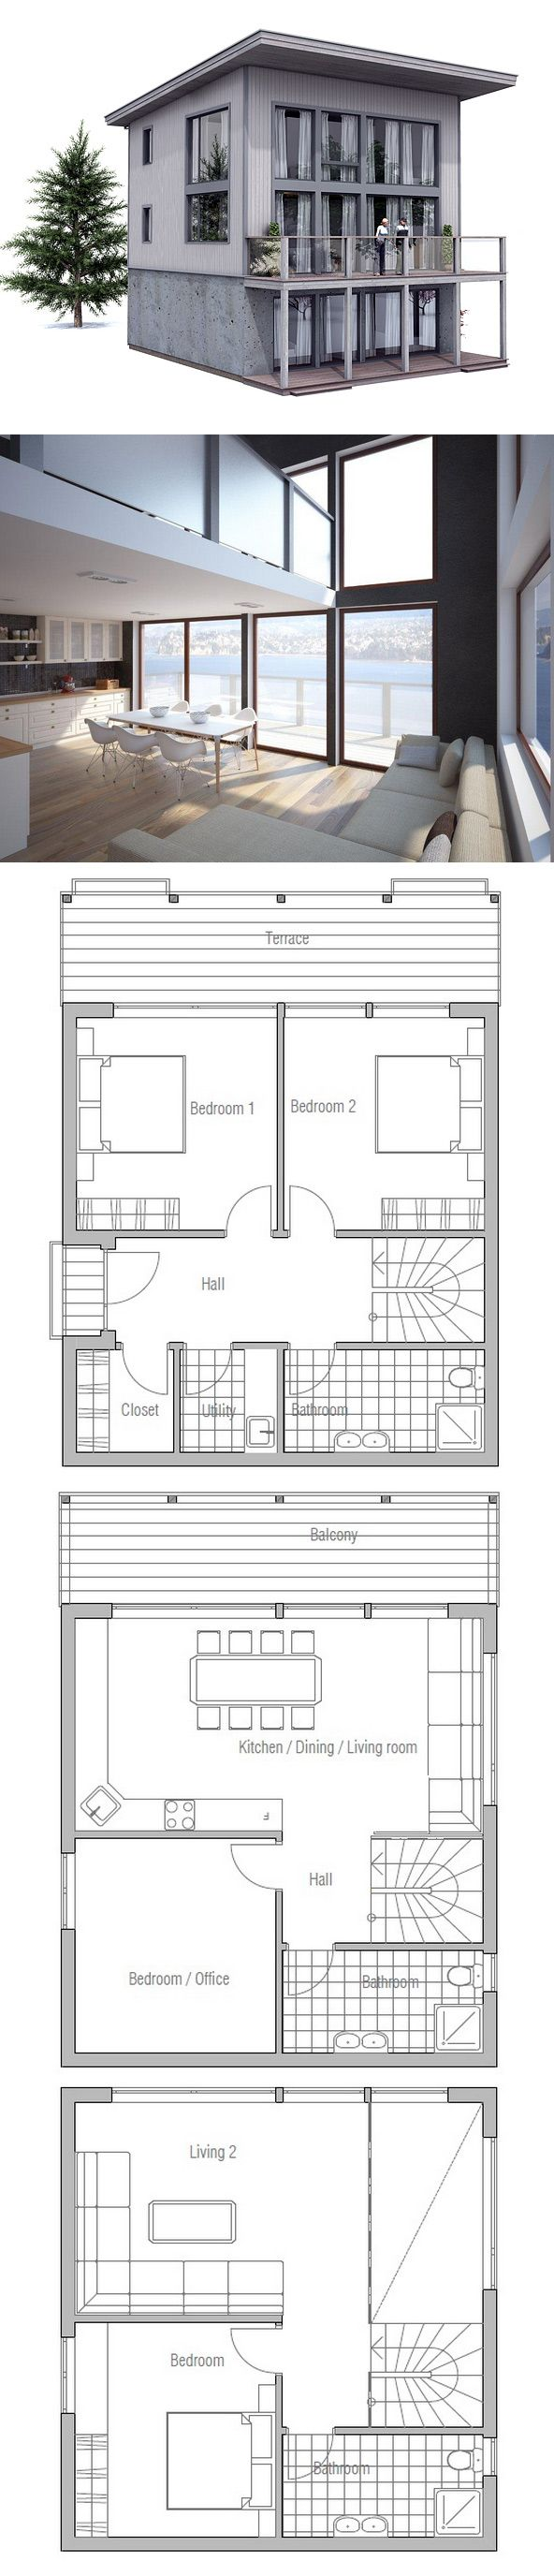 Small house plan only 2 floors switch hall block with for Piantine case prefabbricate